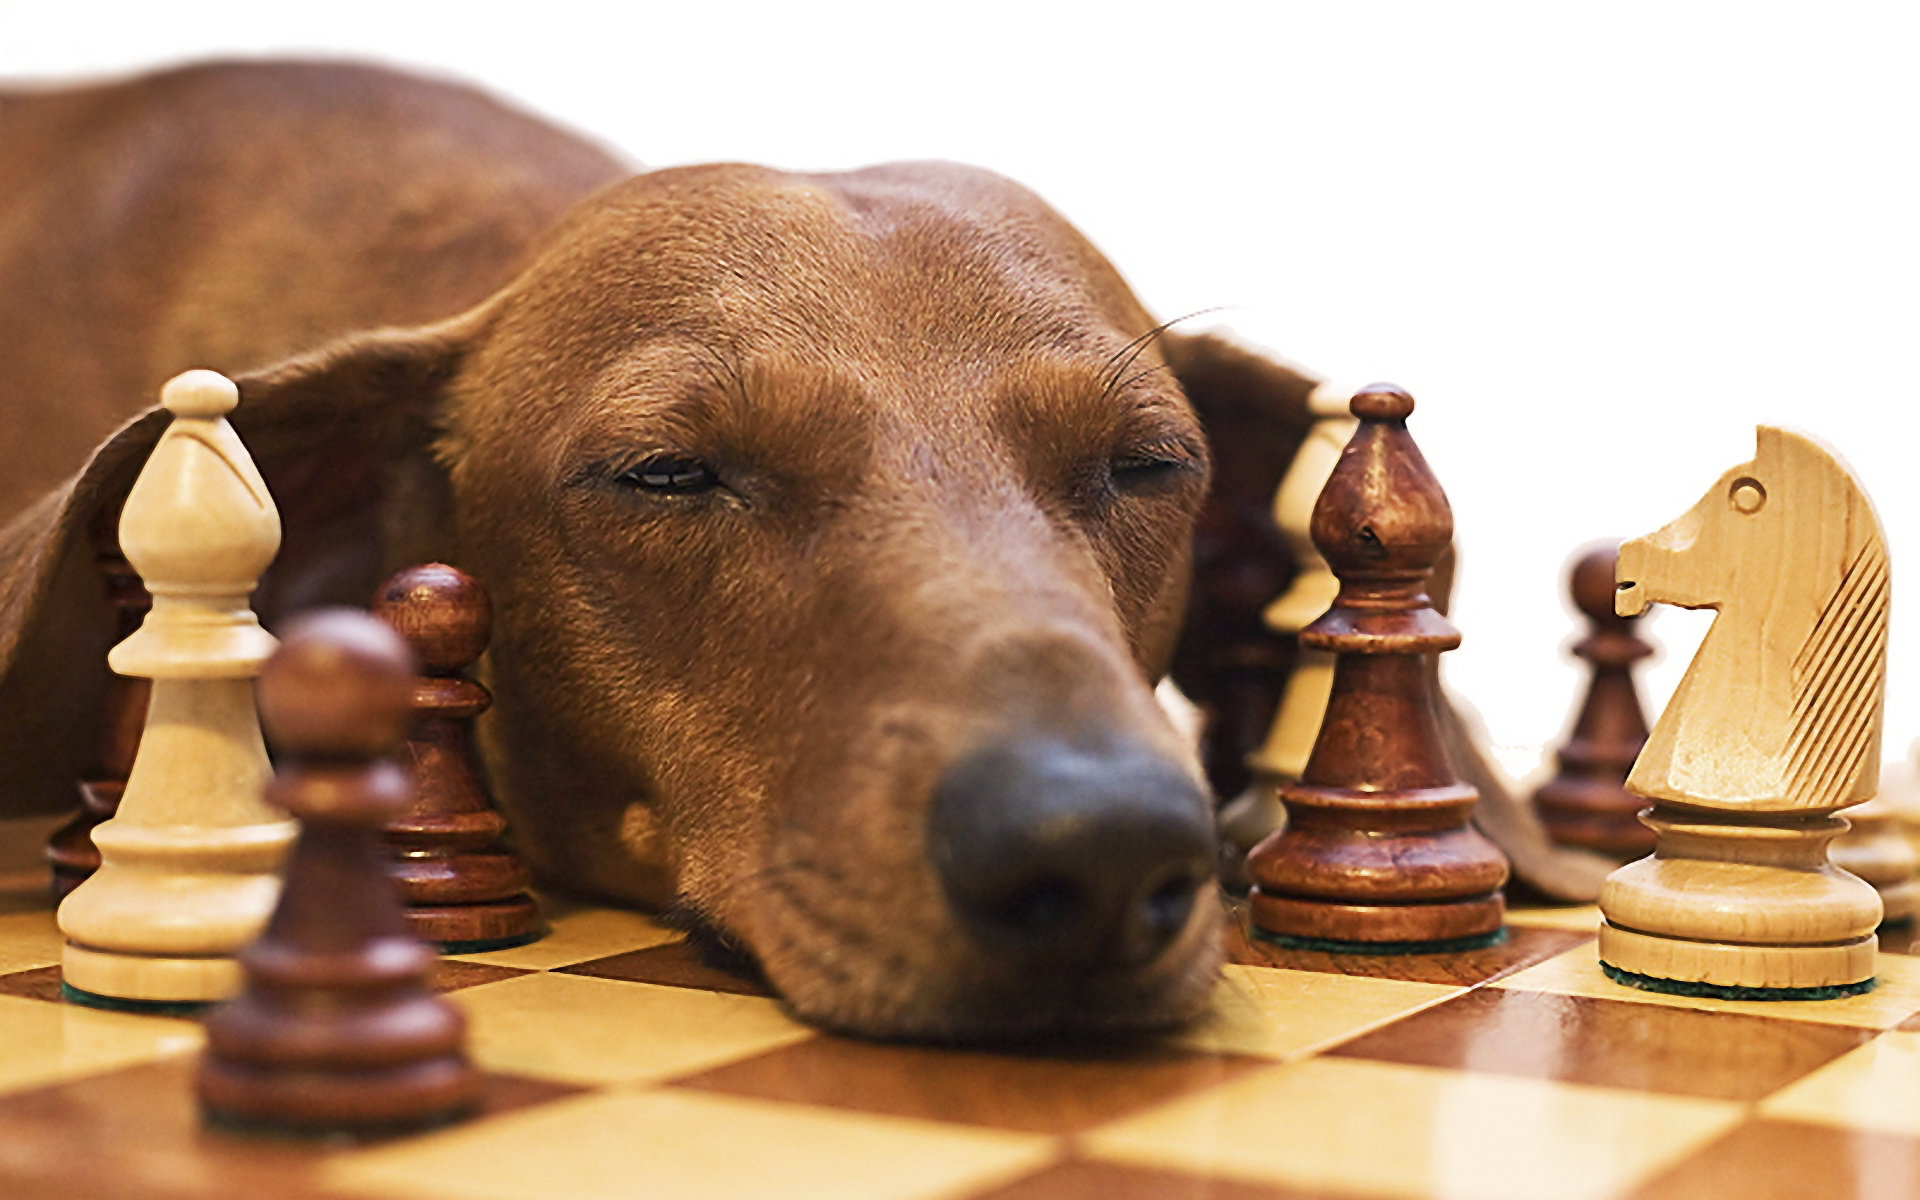 Chess dog intelligence